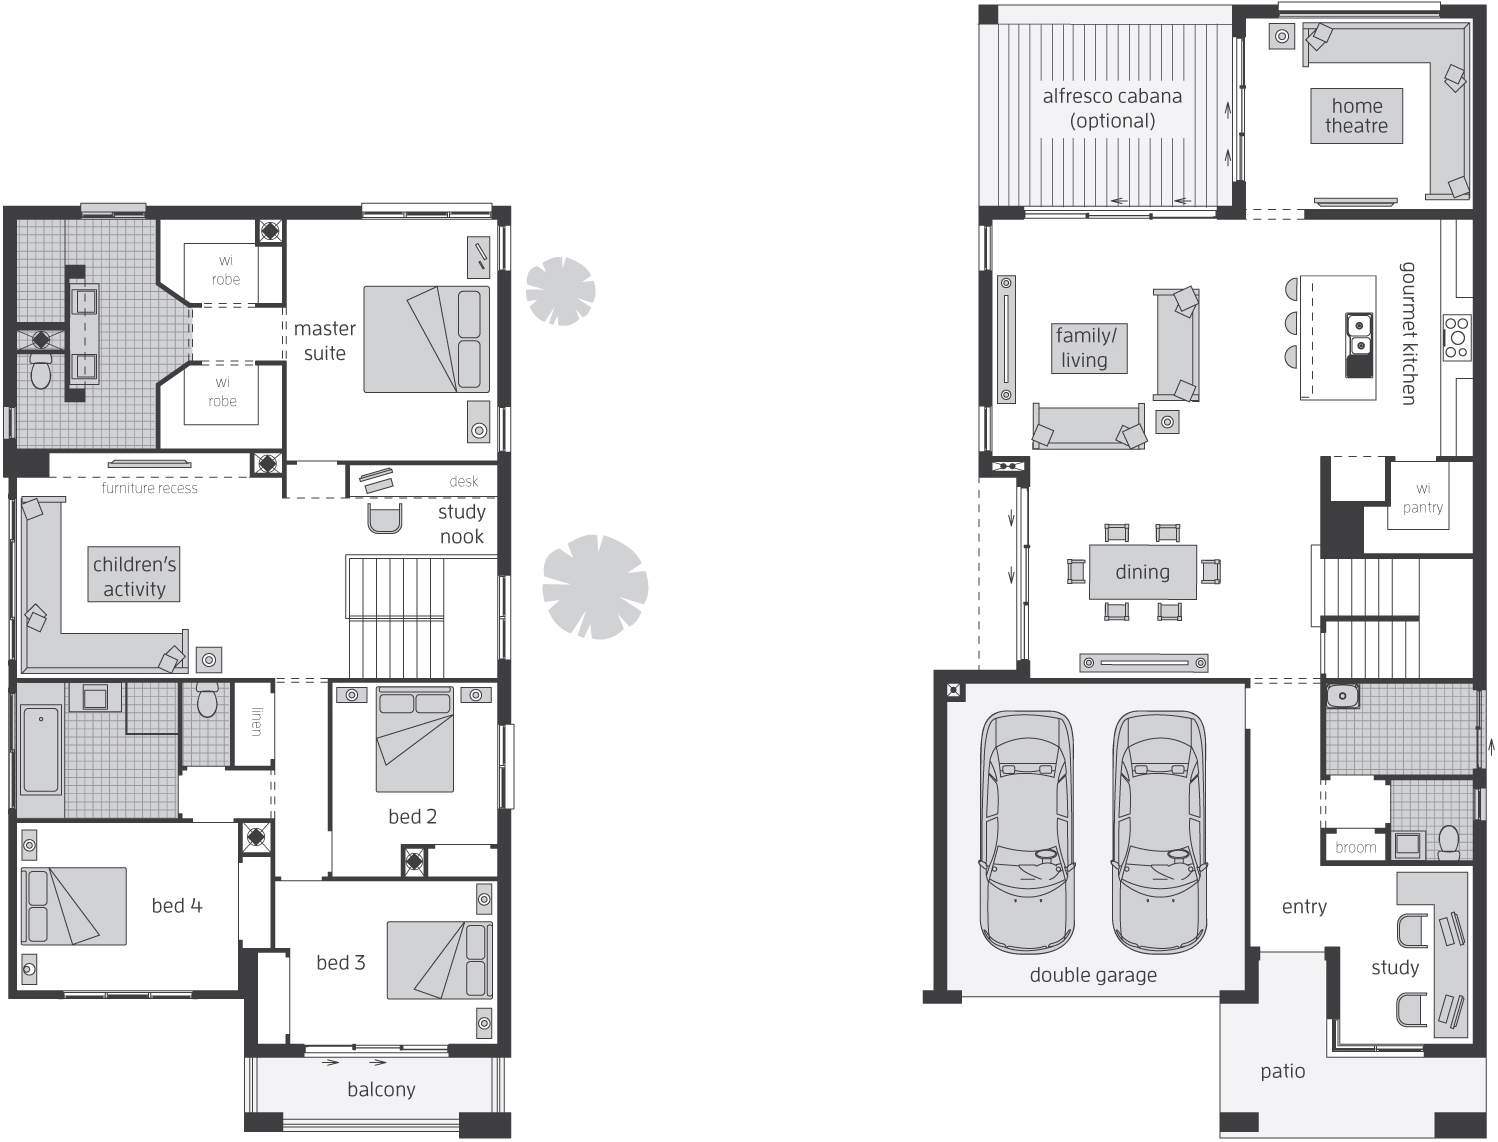 Floor Plan - Edenvale 35 Luxury Two Storey Home - McDonald Jones